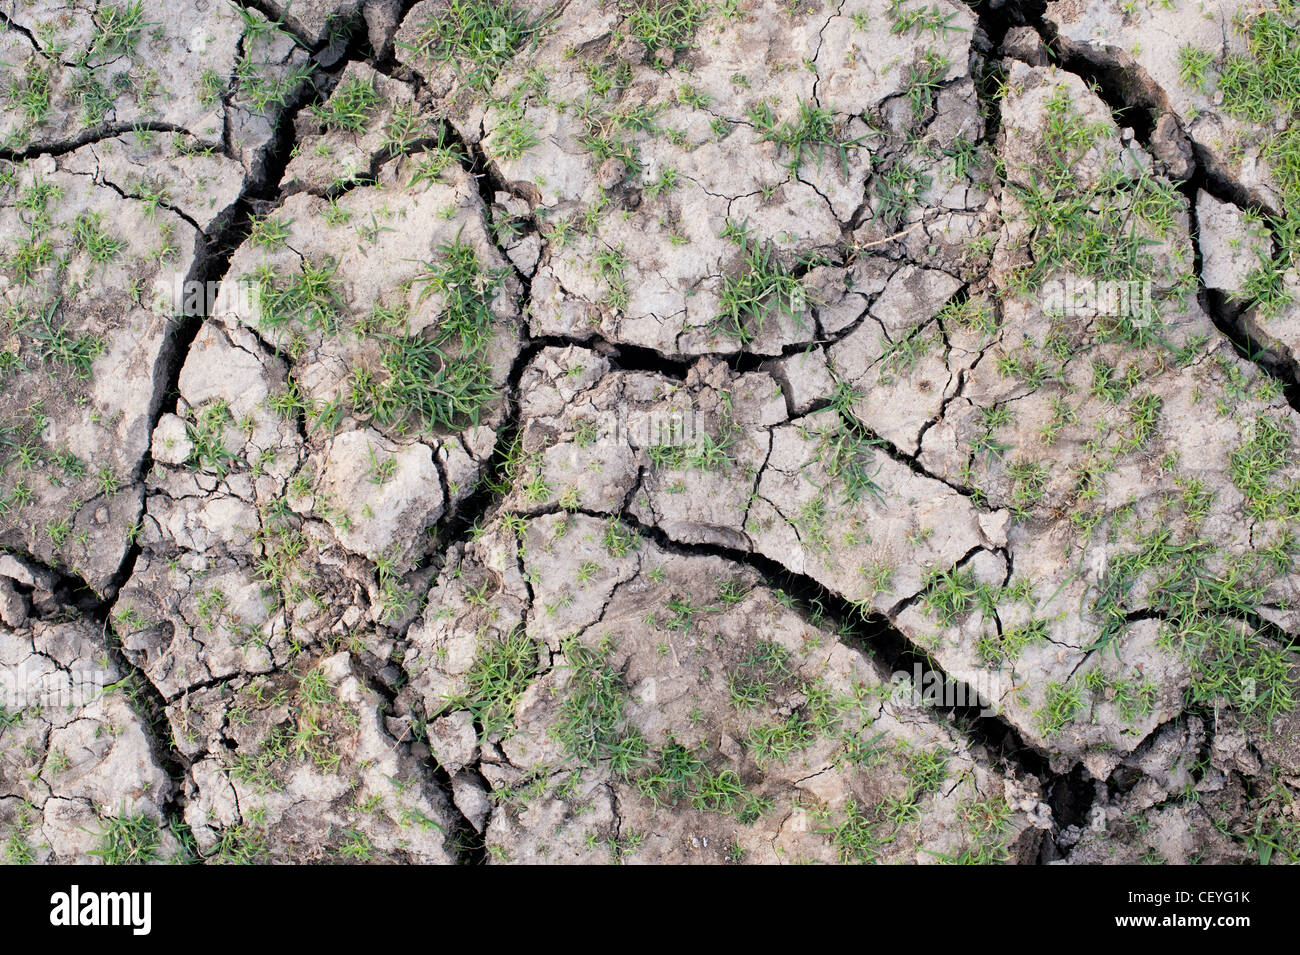 Grass regenerating on a dry cracking clay soil lake bed in the indian countryside - Stock Image